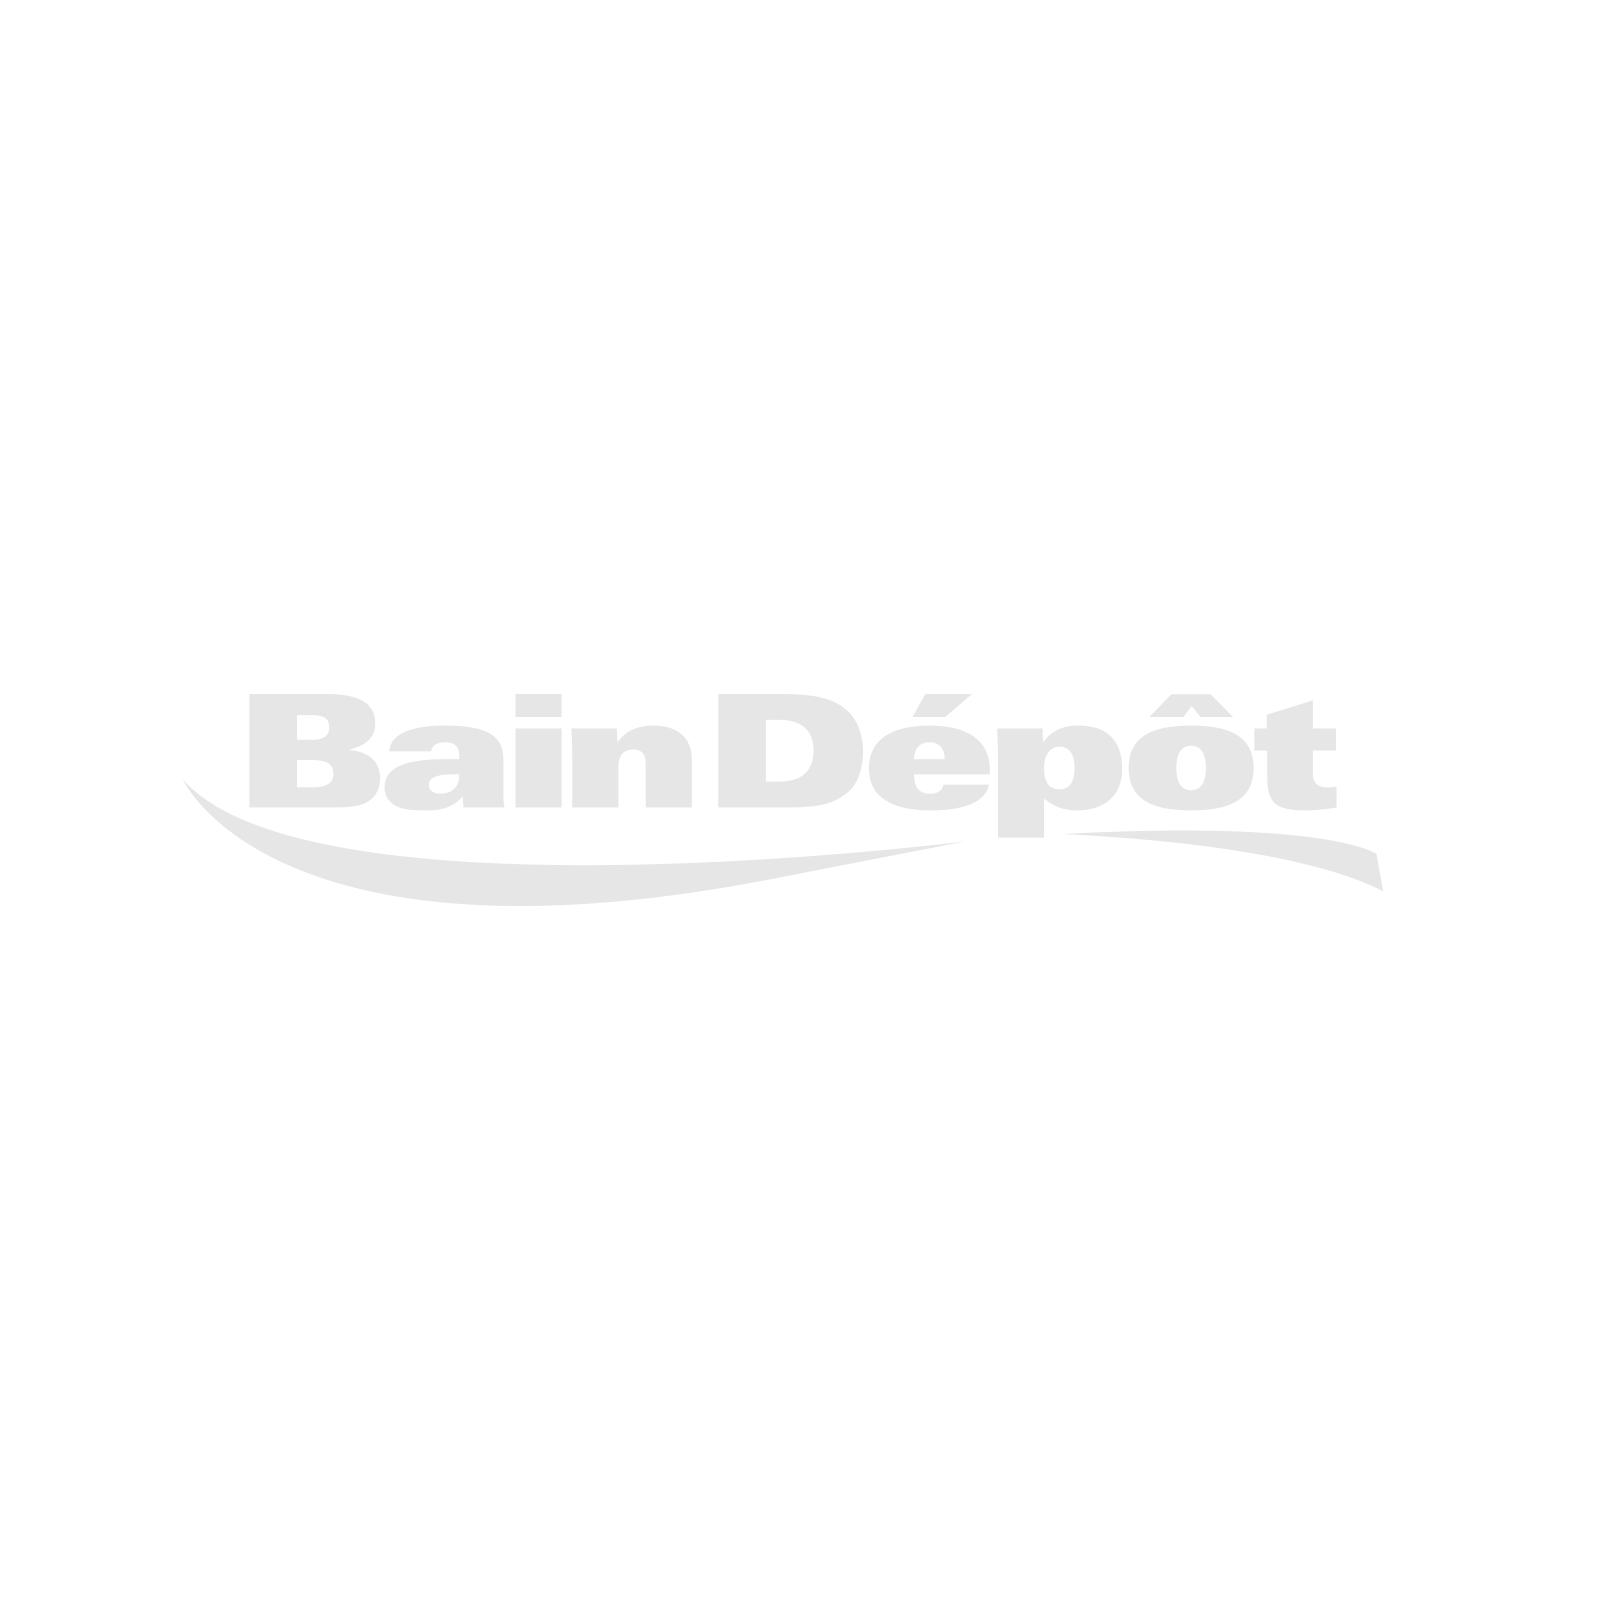 Chrome antique-style wall-mount or freestanding tub faucet with cross handles